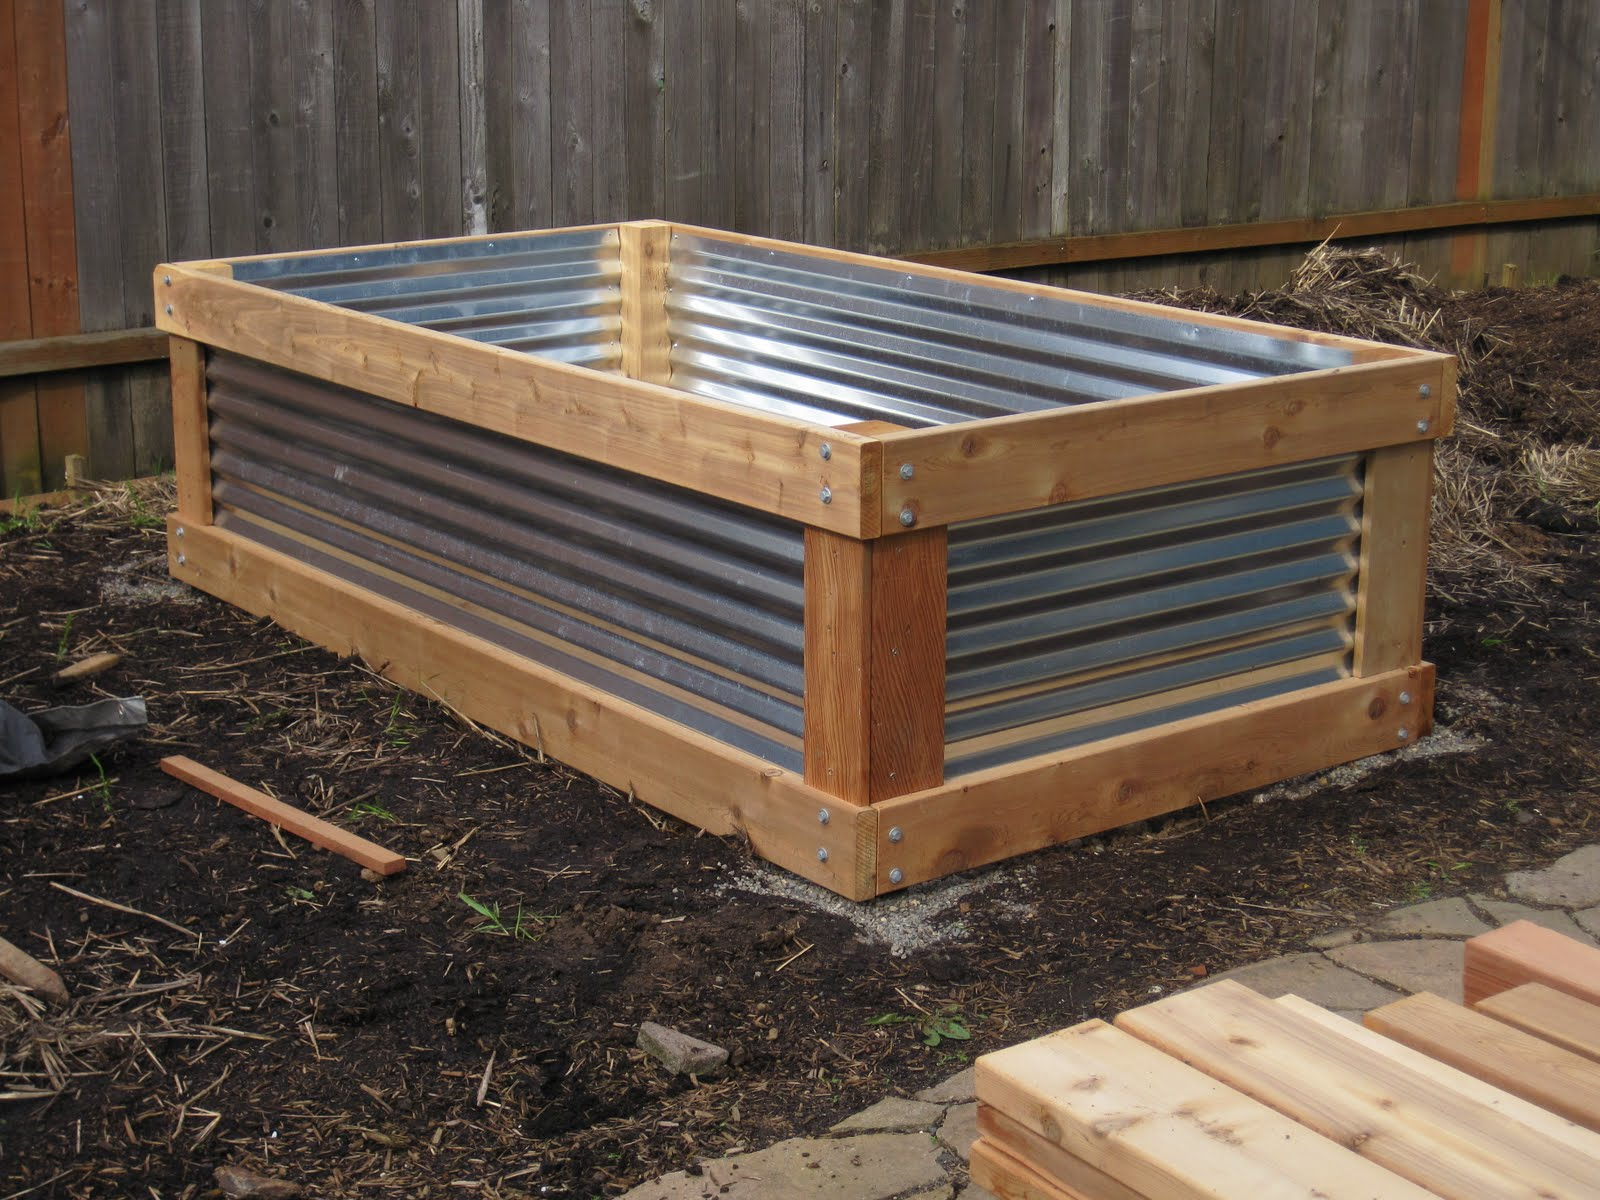 Aristata land arts cedar metal raised bed project for Corrugated metal raised garden beds